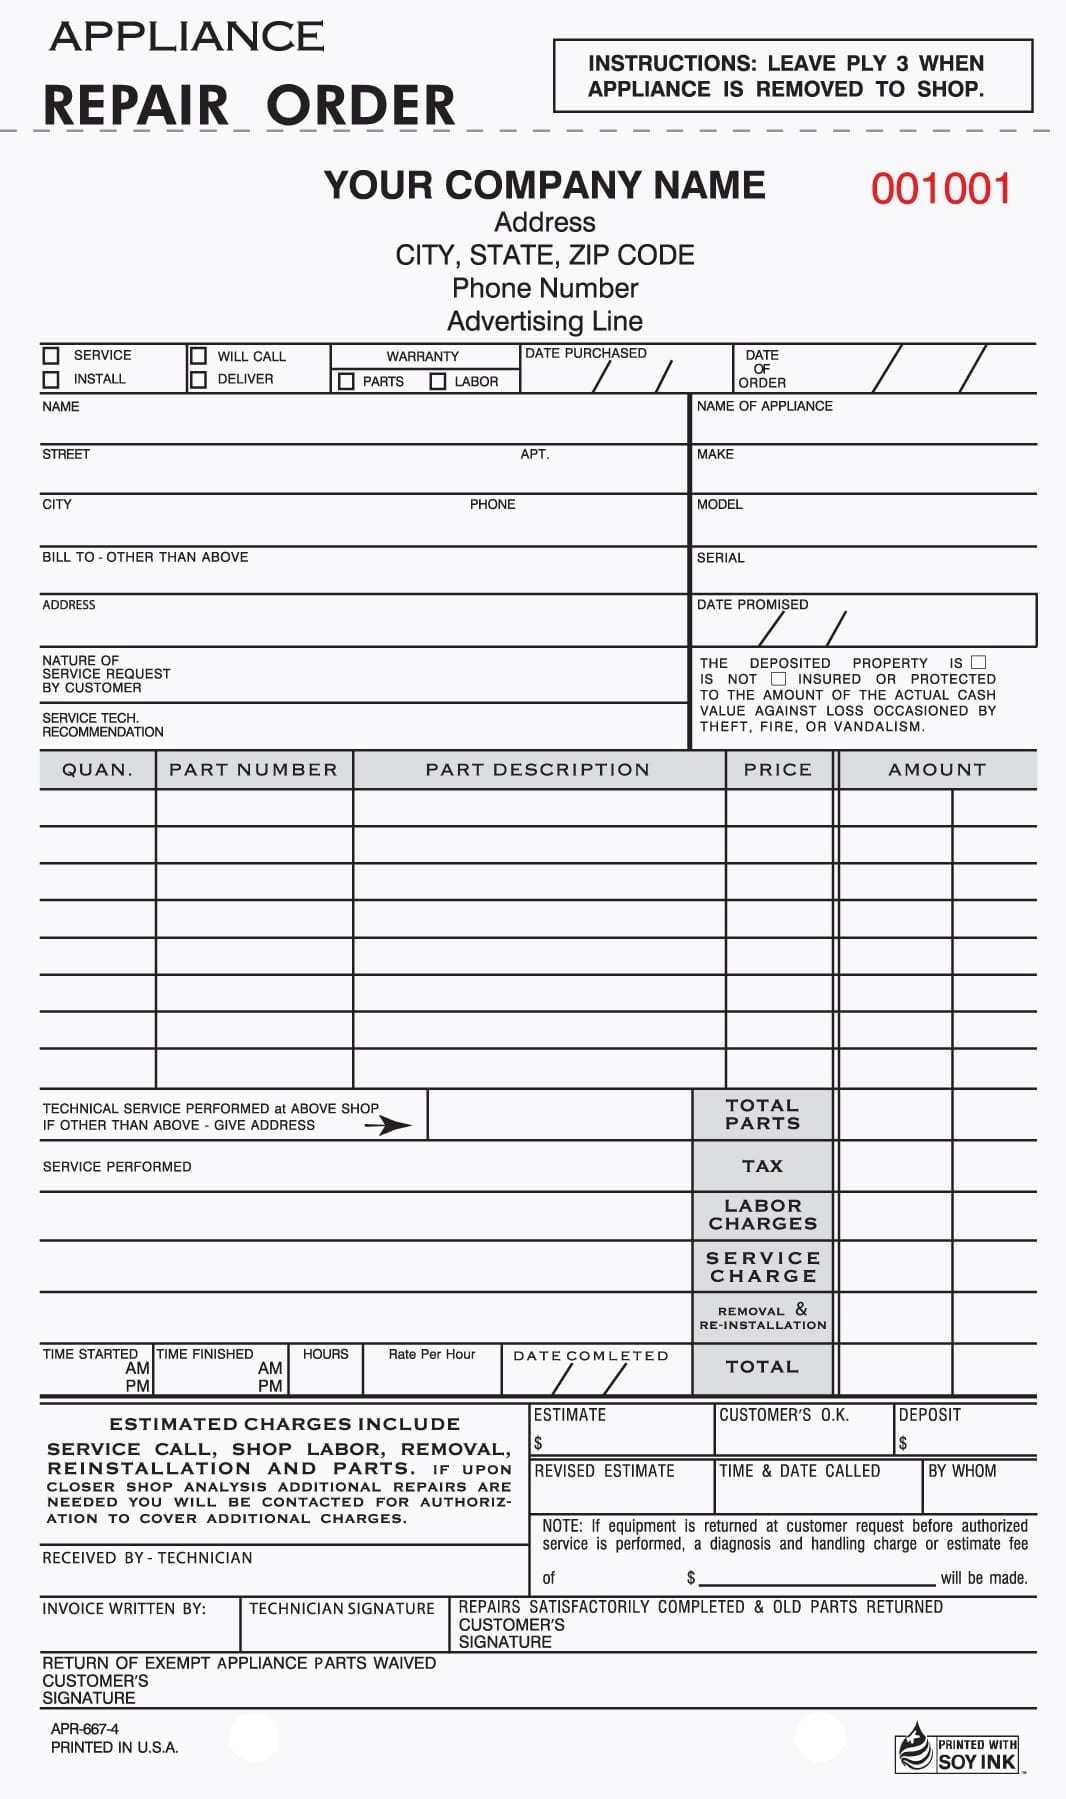 4 Part Appliance Repair Form